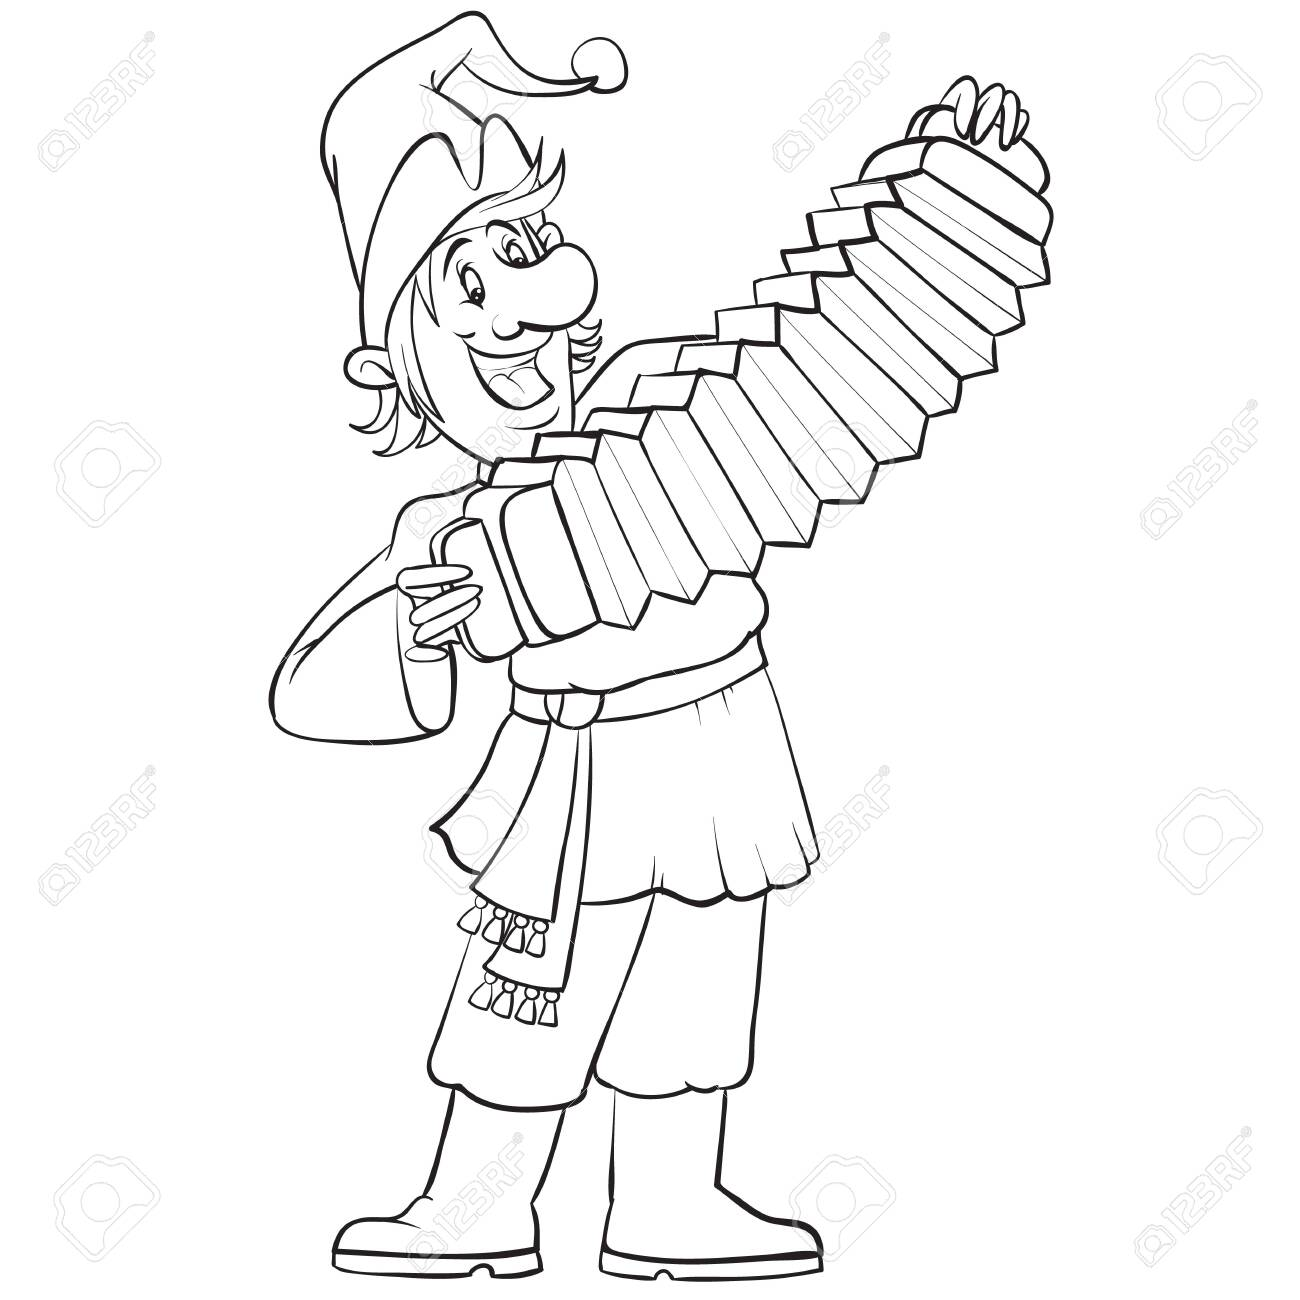 Russian buffoon plays the accordion at the fair drawn in outline, isolated object on a white background, vector illustration, - 141989825